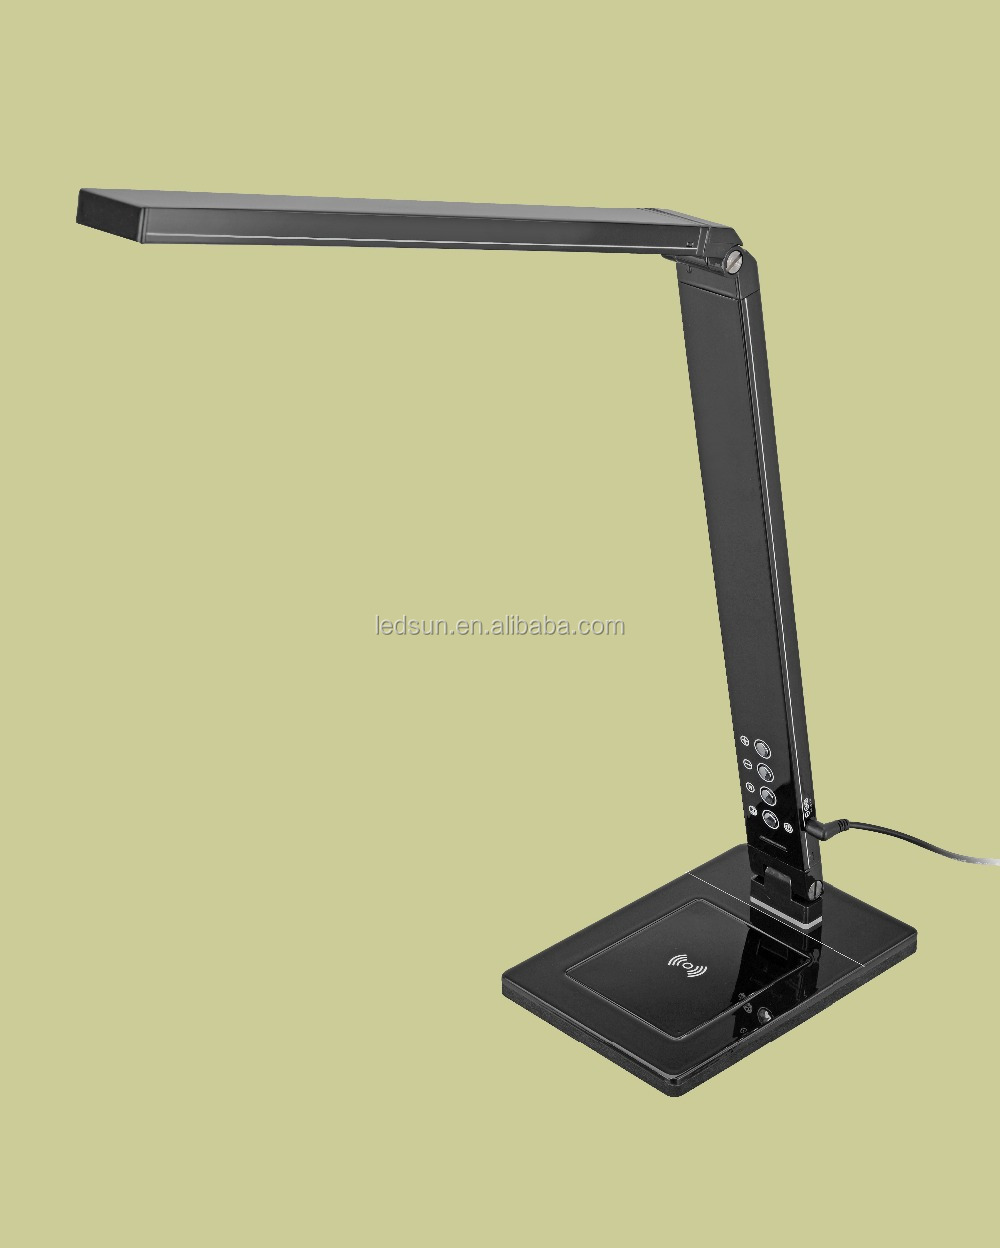 QI Wireless Charging LED Desk Lamp for Smart Phone& Watch